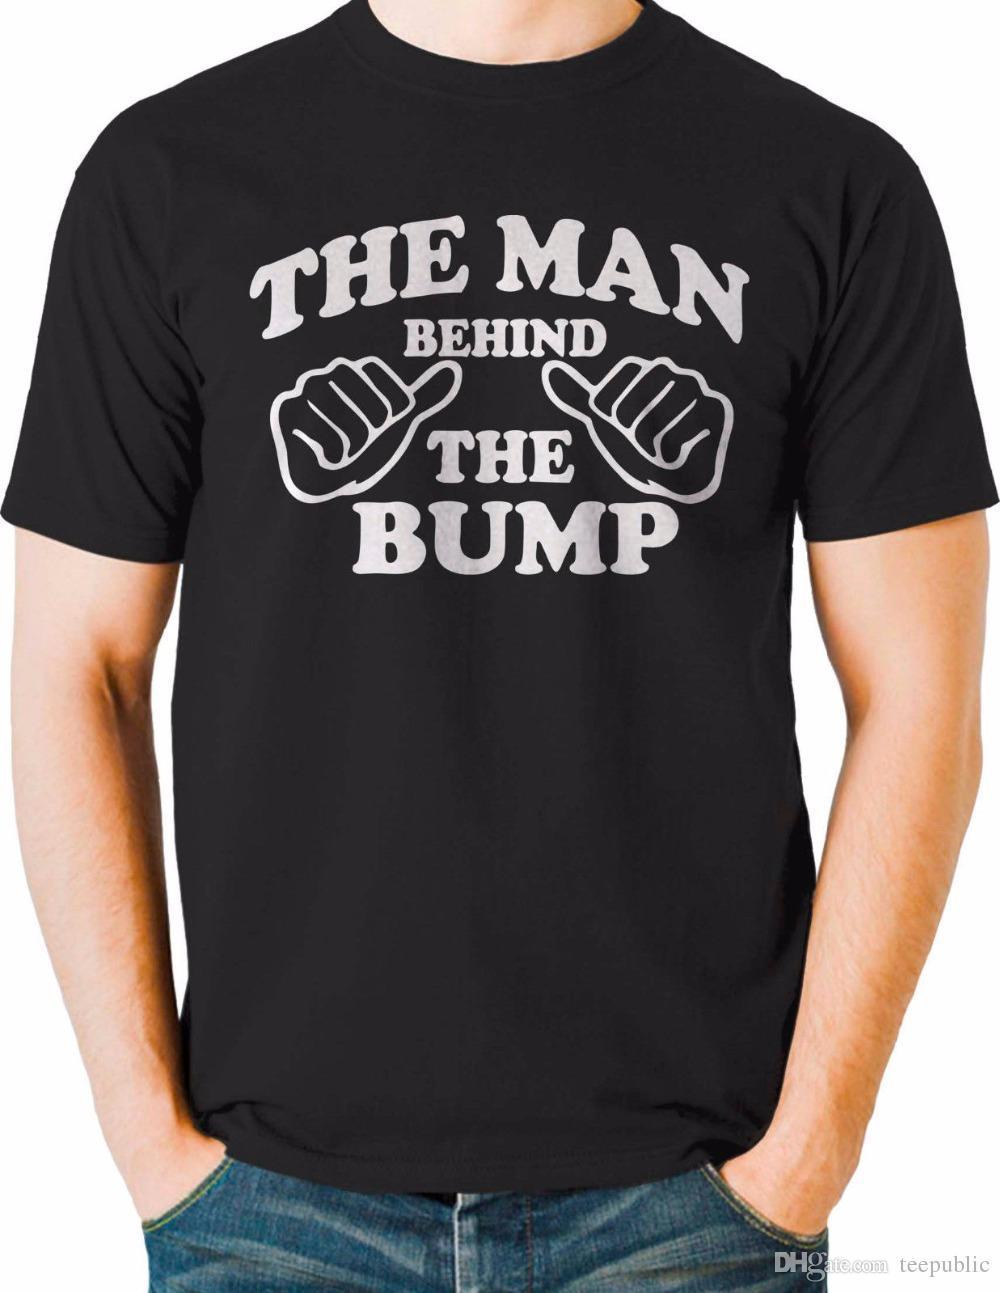 0b0a8fcdd097e Basic Models Short Graphic Man Behind The Bump Funny T Shirt Maternity  Husband Baby Daddy Mens Big Tall O Neck Mens Tees Tees Design T Shirt Of  The Day From ...